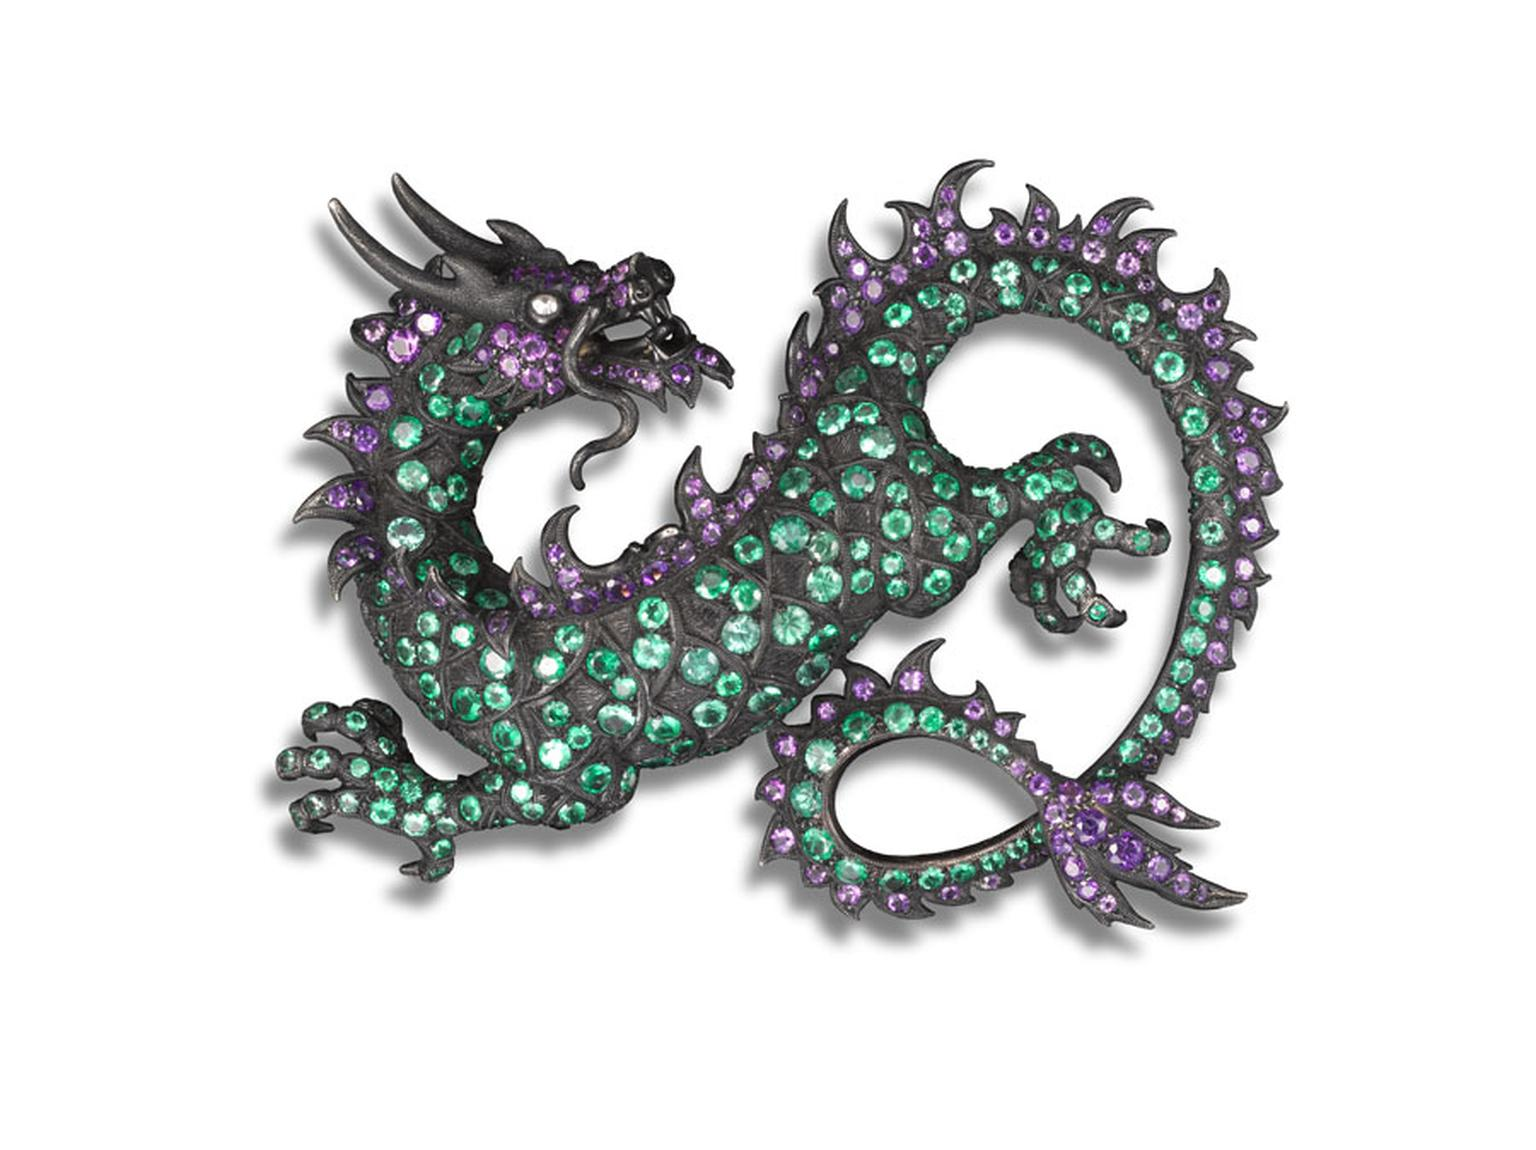 Dancing Dragon brooch with amethyst, emerald and white diamond by Carnet, designed by Michelle Ong.